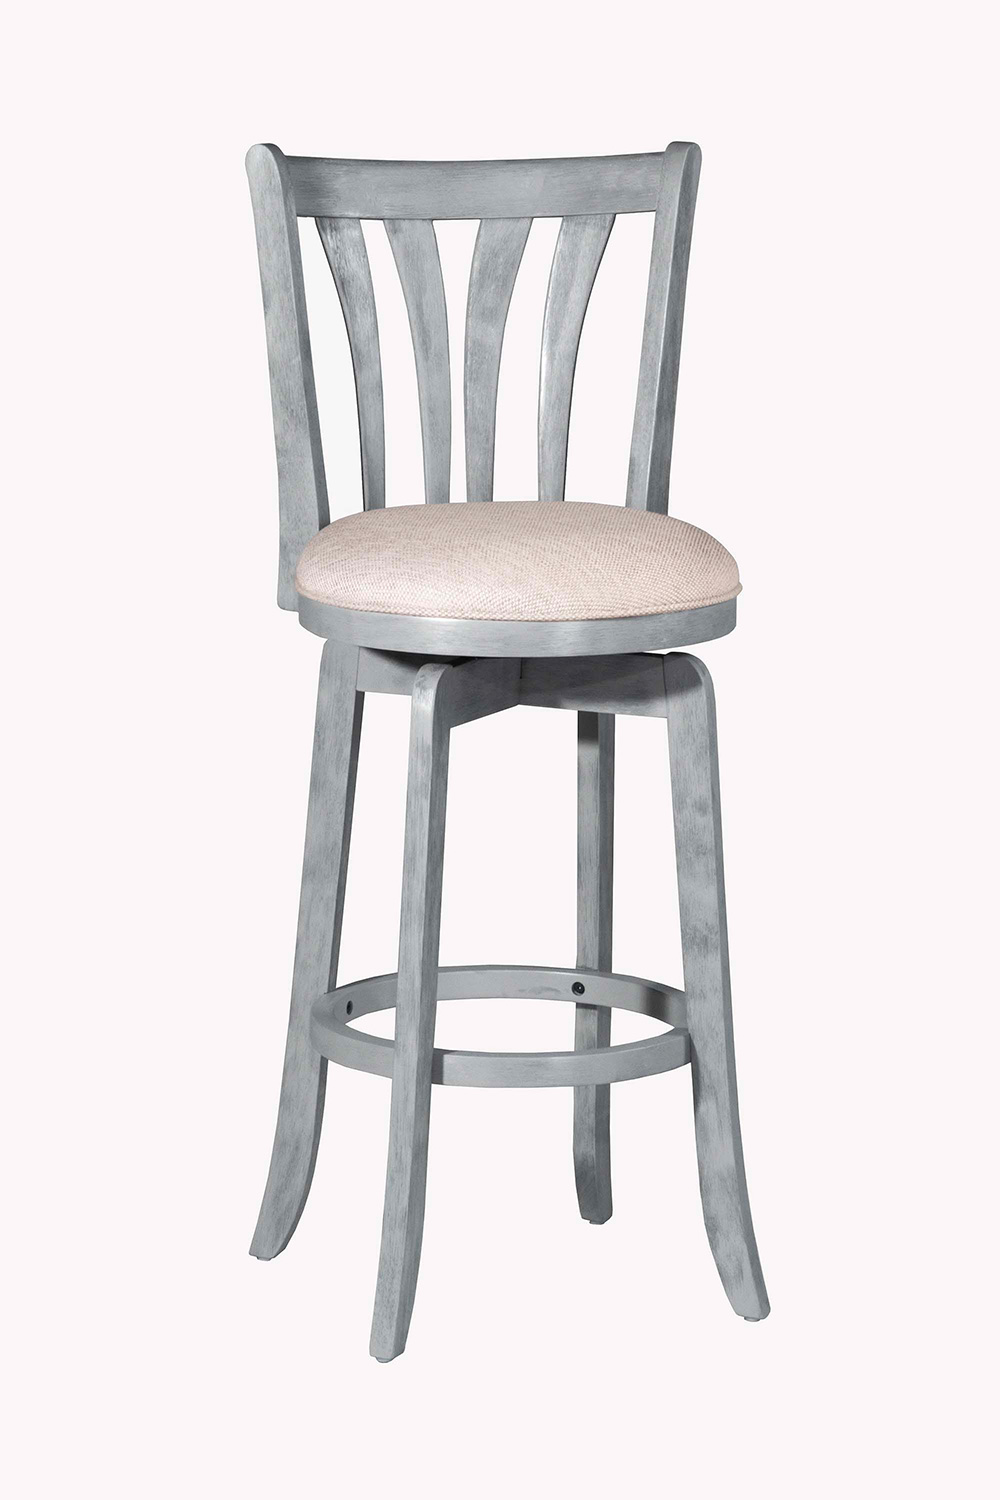 Hillsdale Savana Swivel Bar Stool - Blue Wirebrush - Cream Fabric